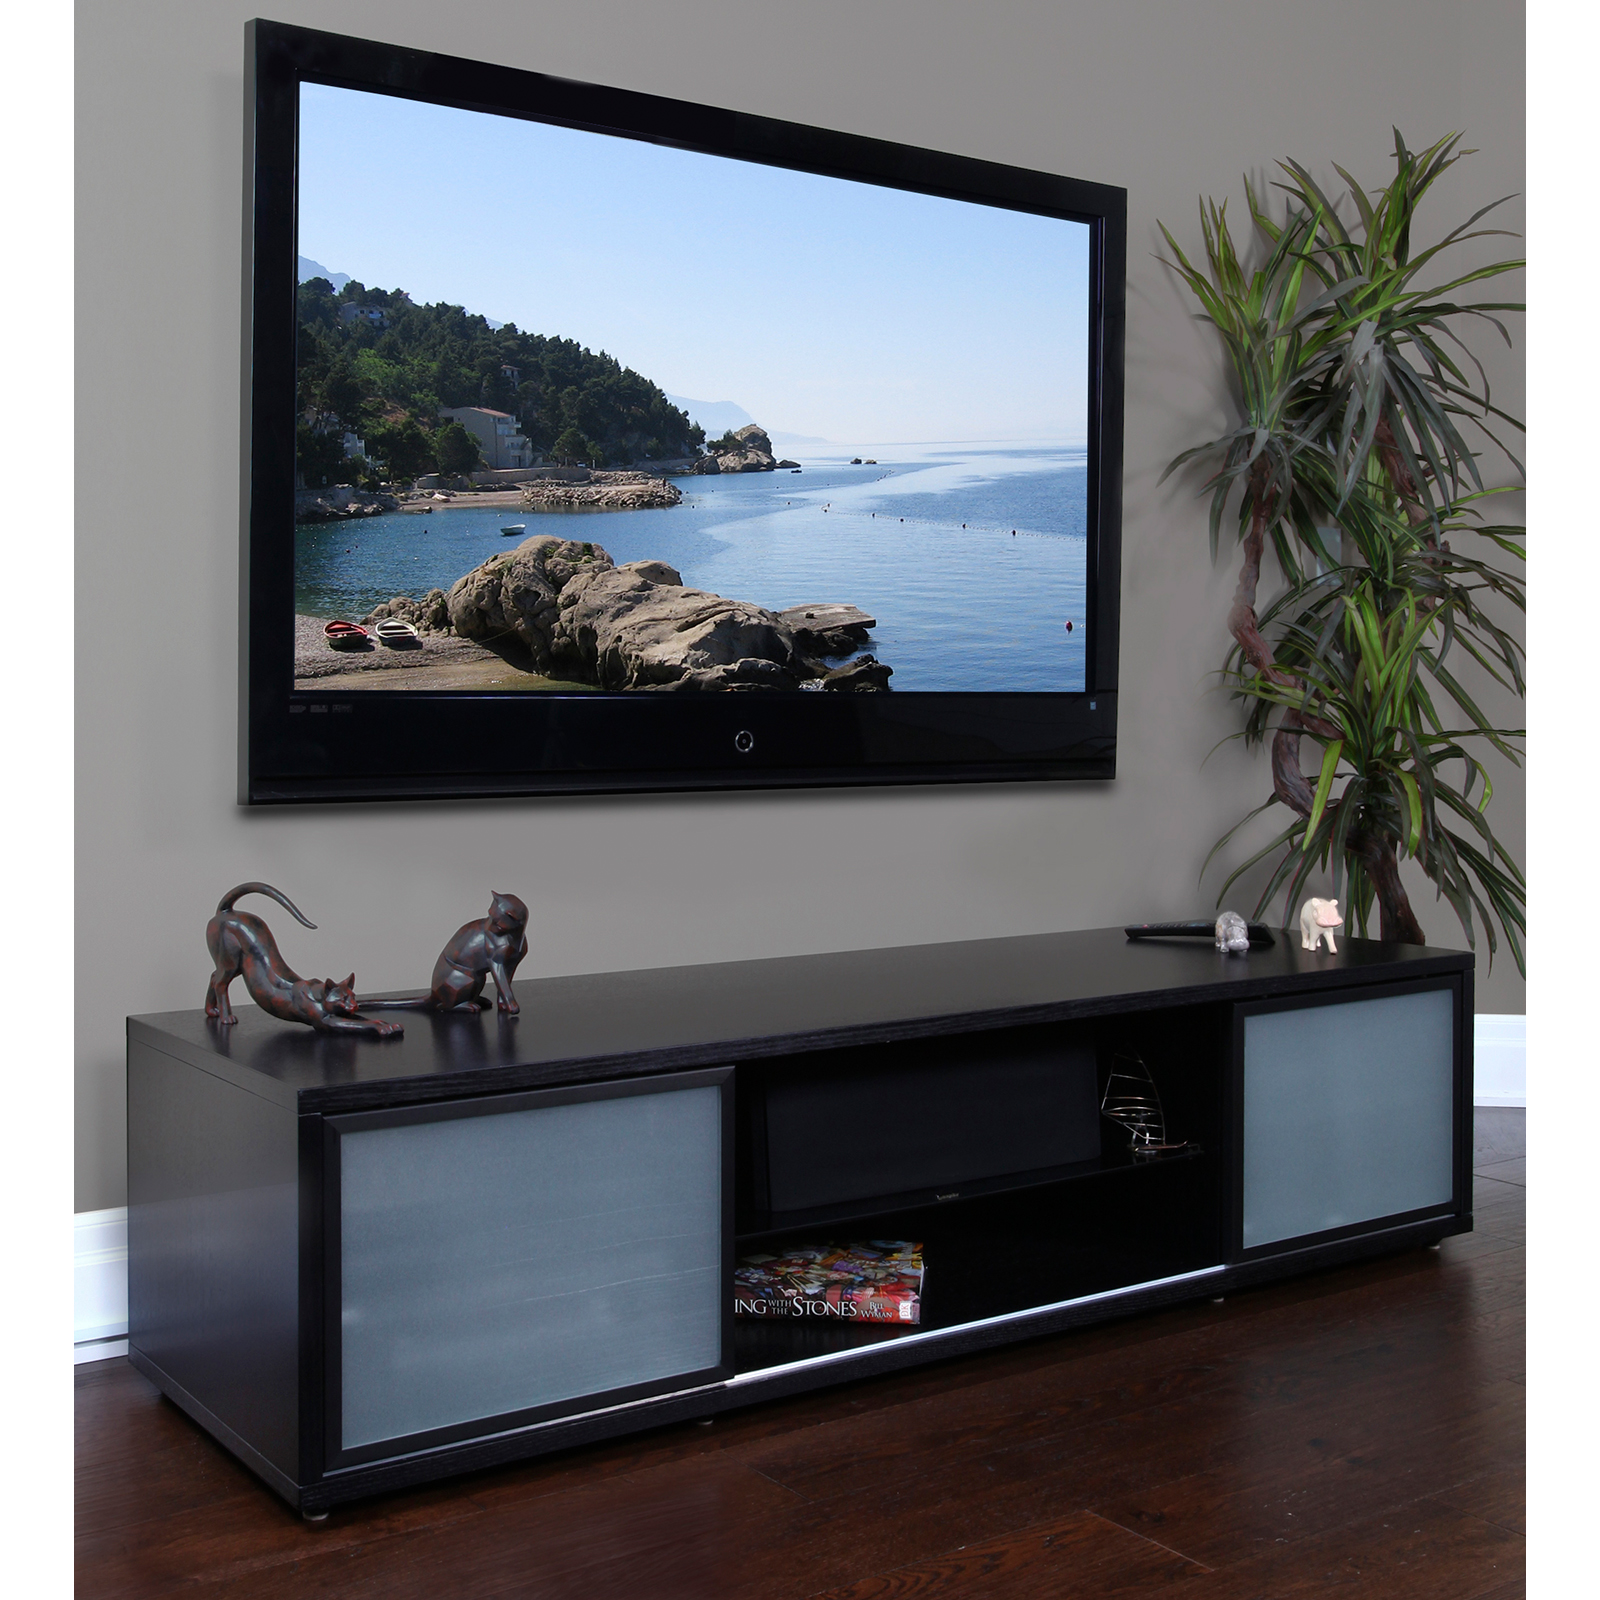 Plateau Srv Series 75 Inch Tv Stand In Black Do Not Use